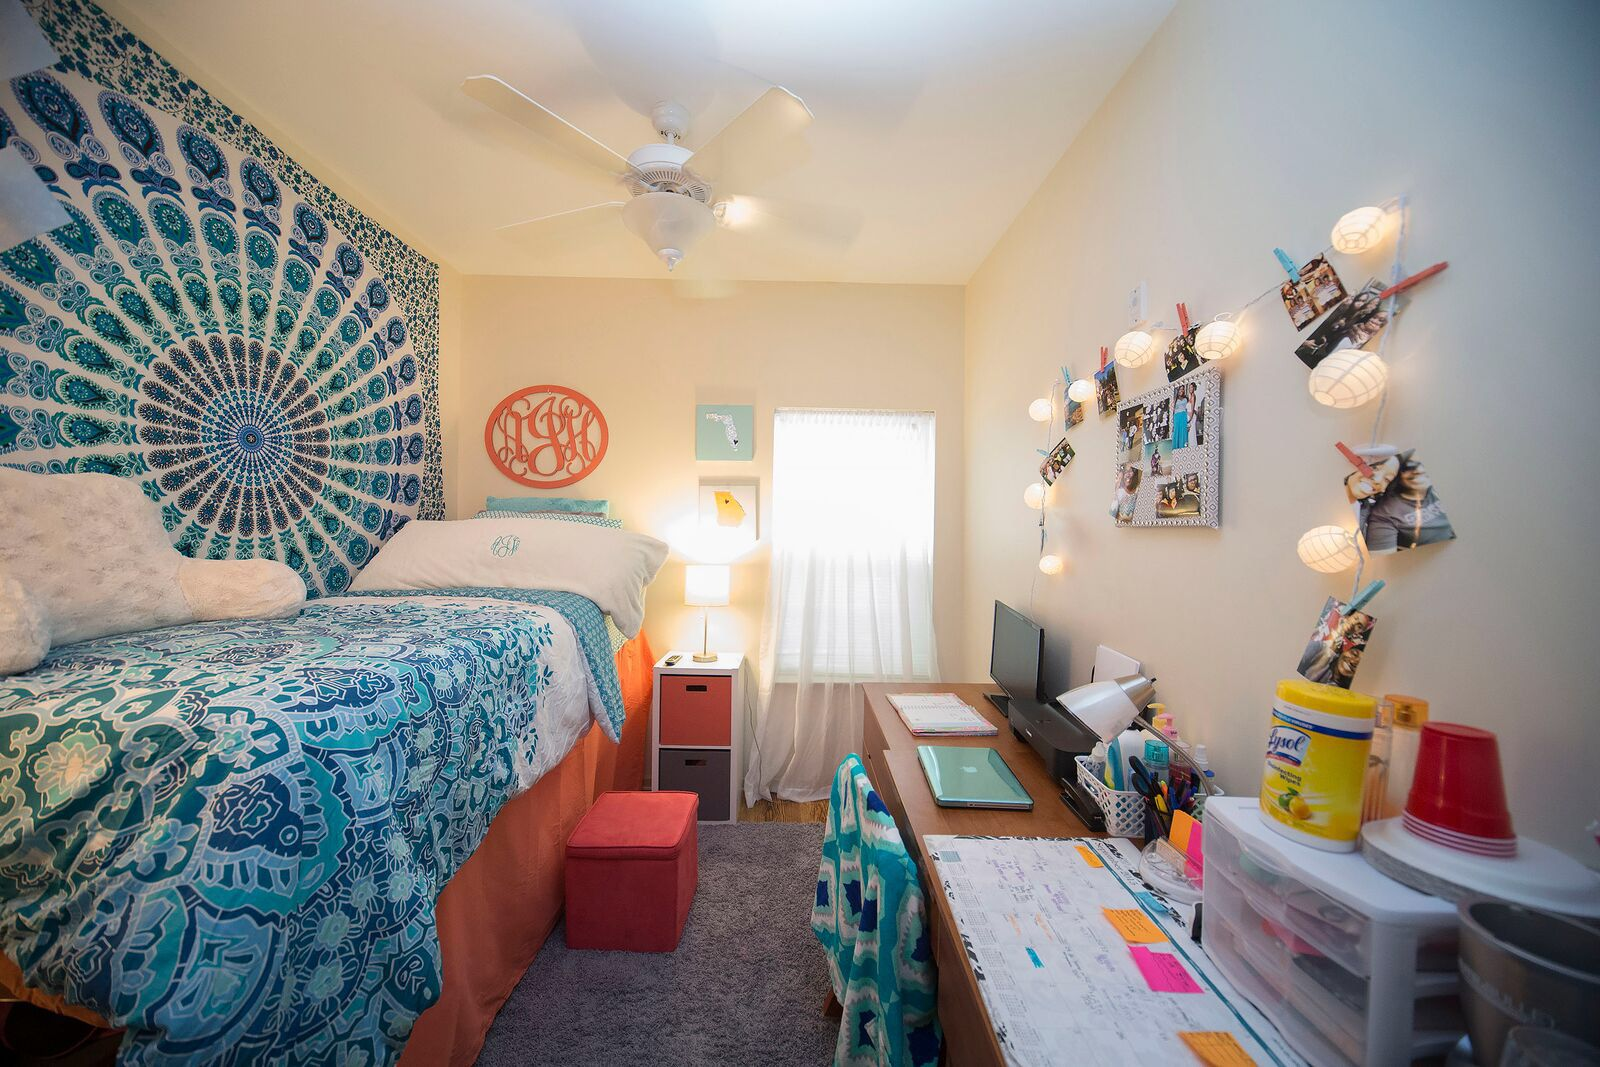 My dorm room at Valdosta state university  -tapestry Amazon  -sheets bed bath and beyond  -monogram etsy  -lights target  -cube store target  & more